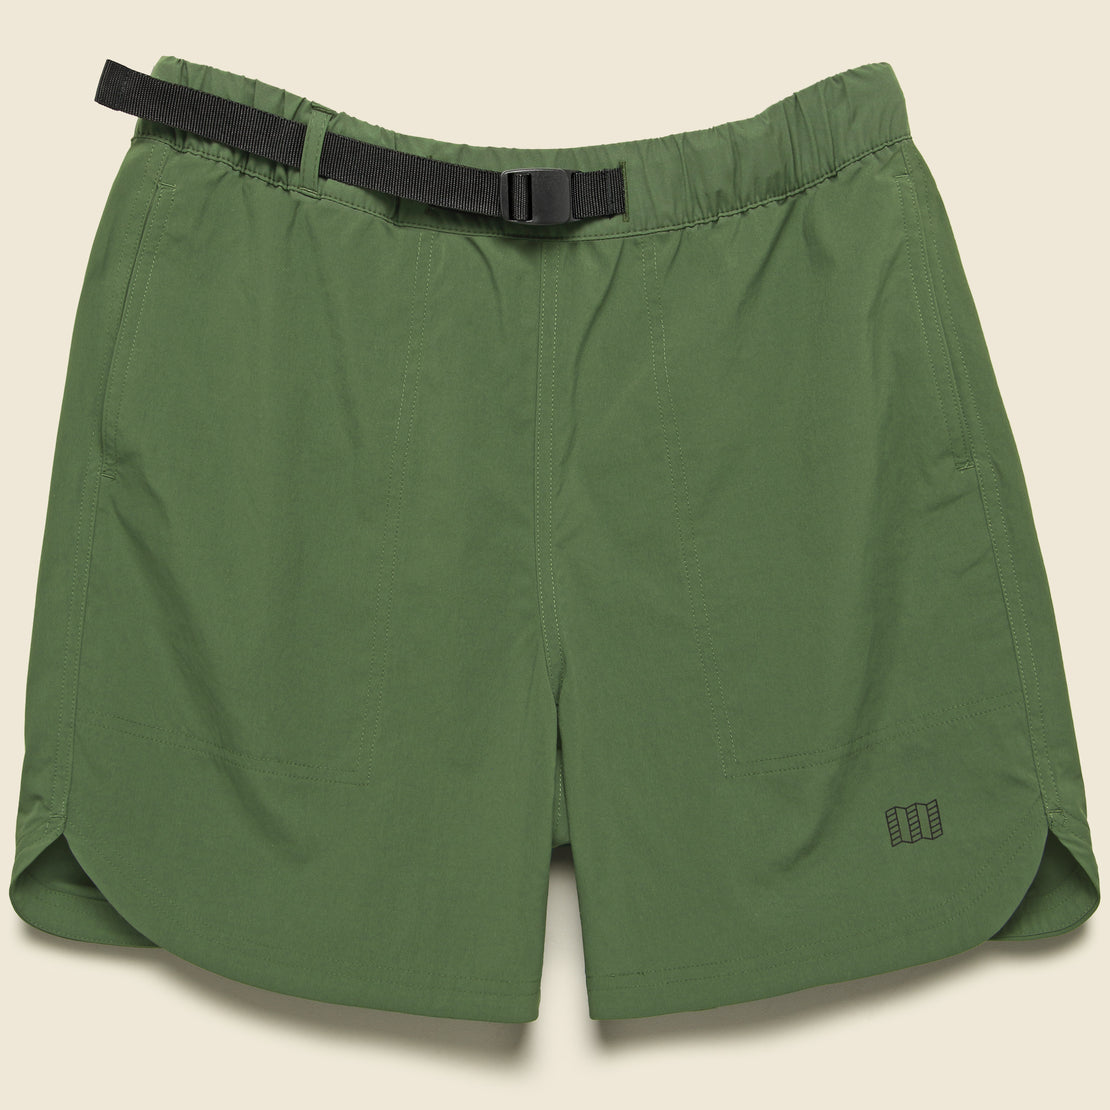 Topo Designs River Shorts Lightweight - Olive